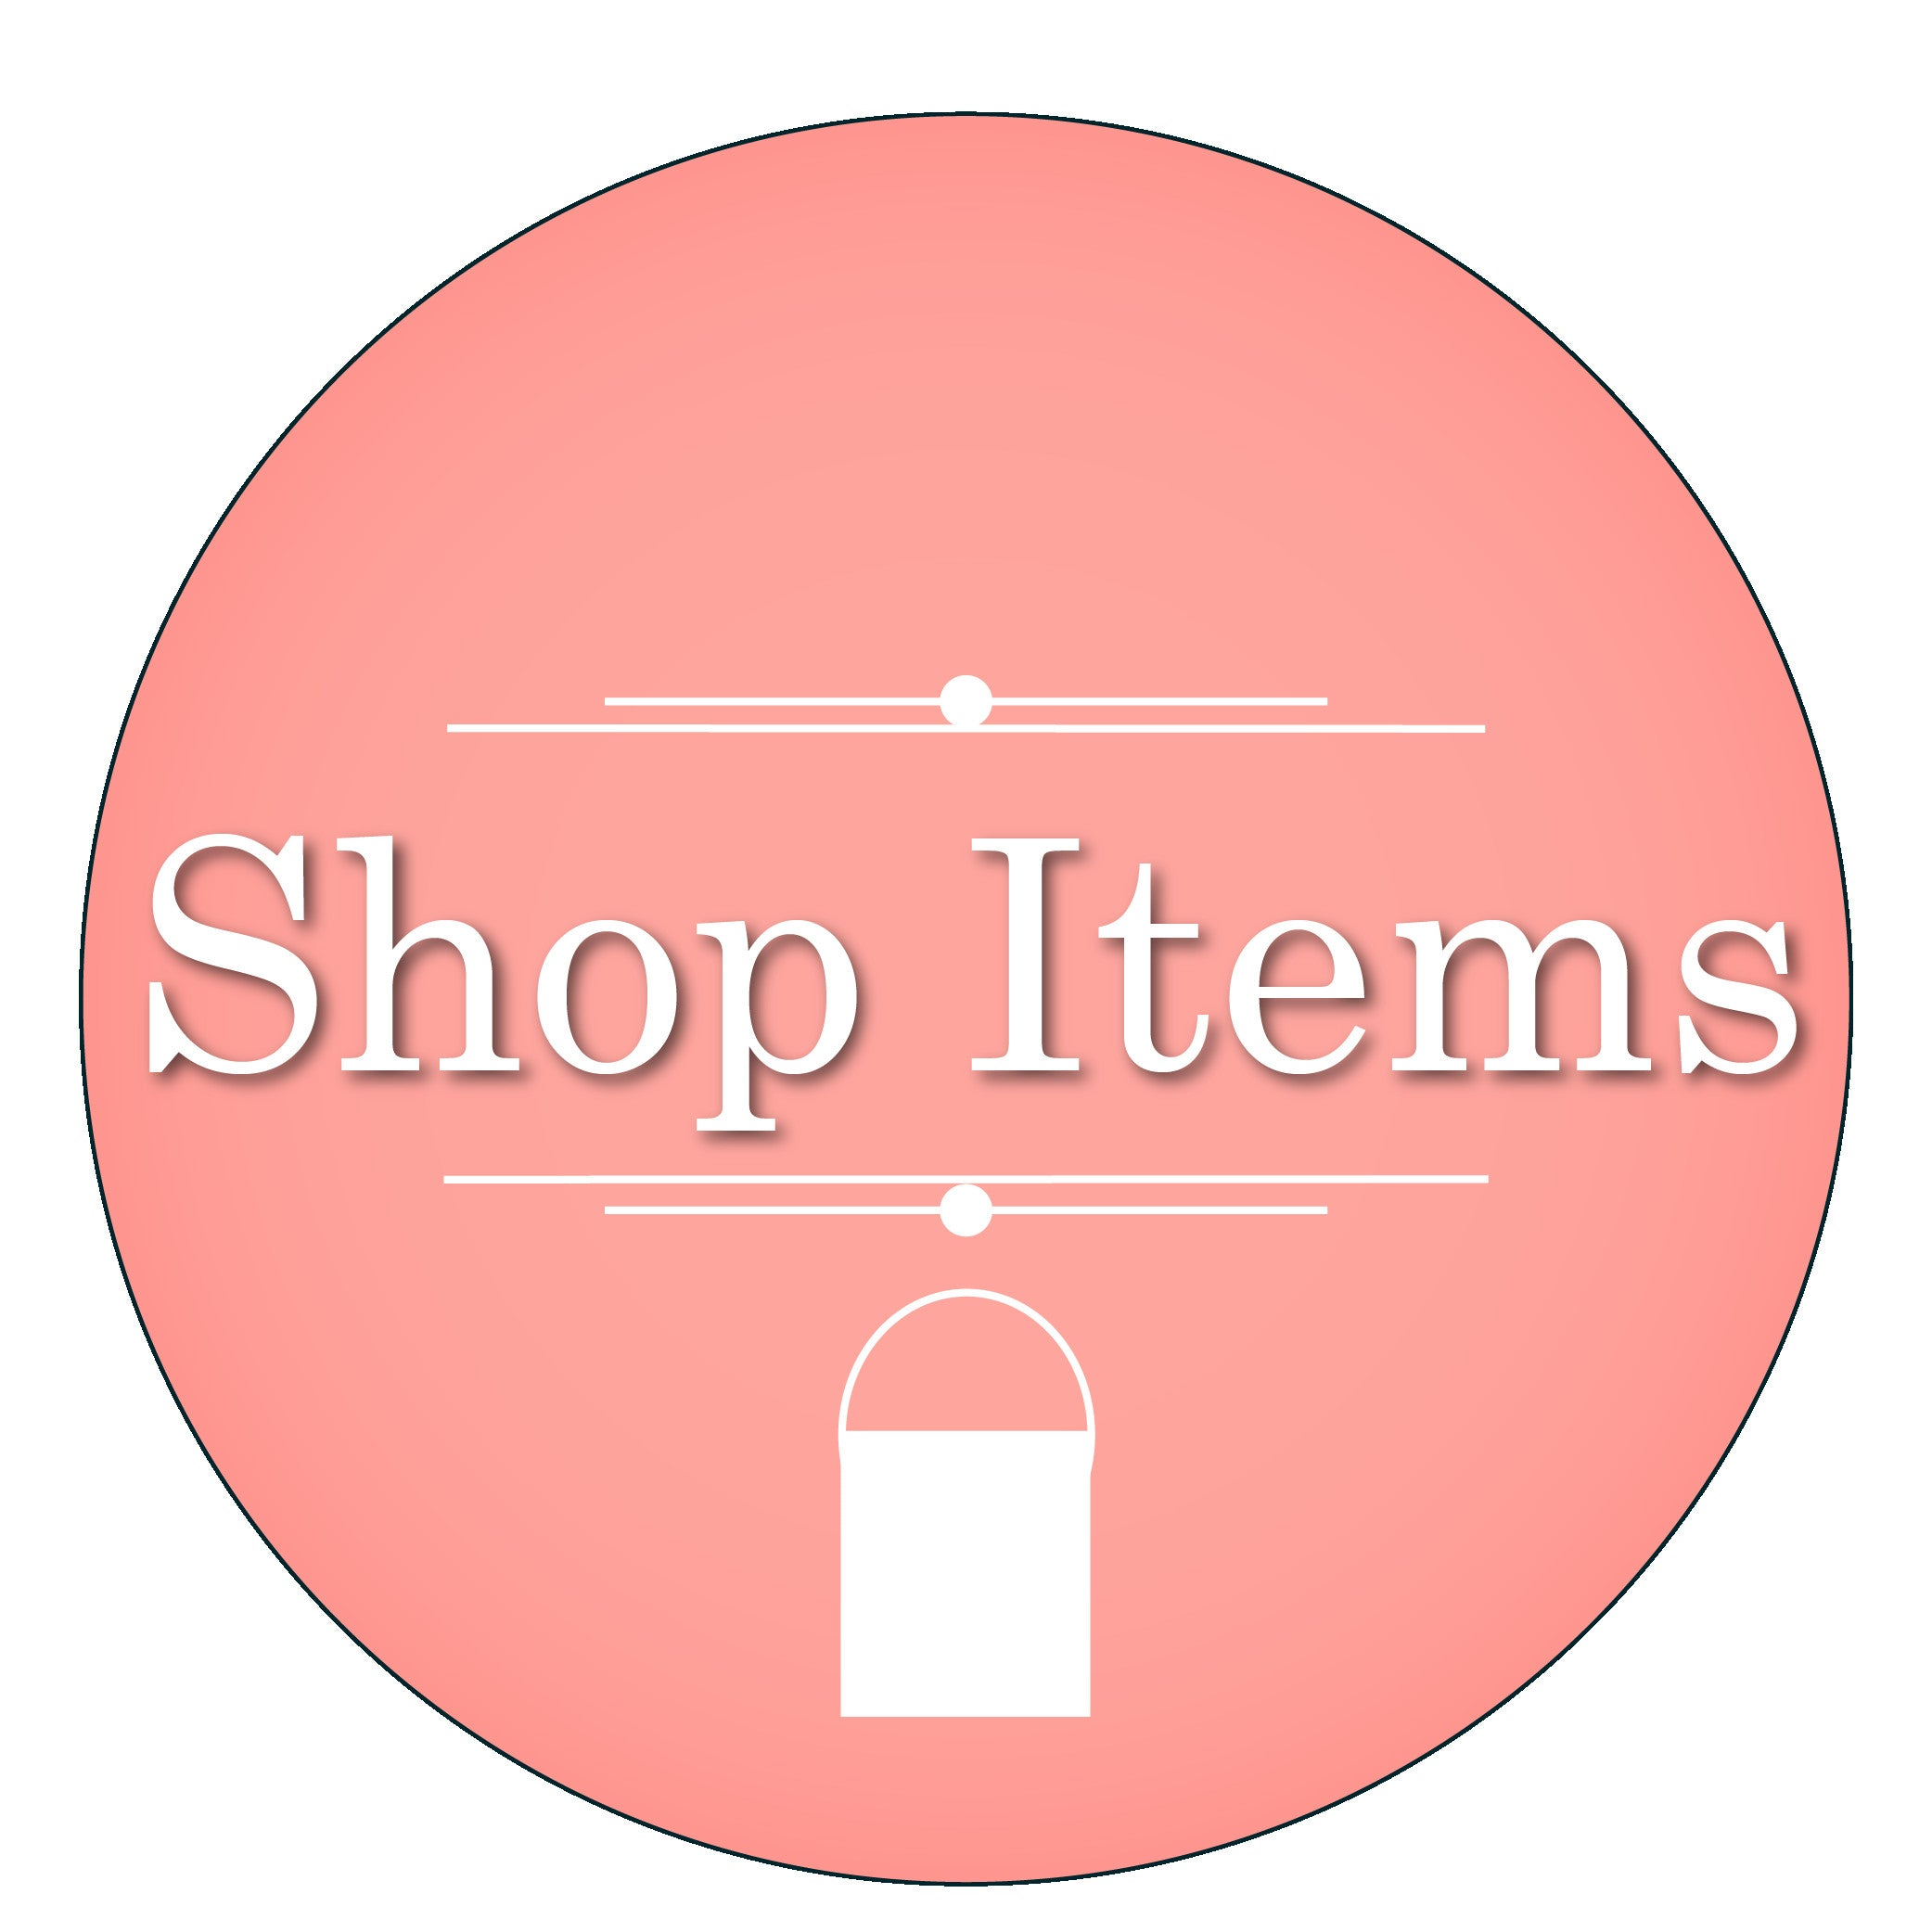 Shop Items